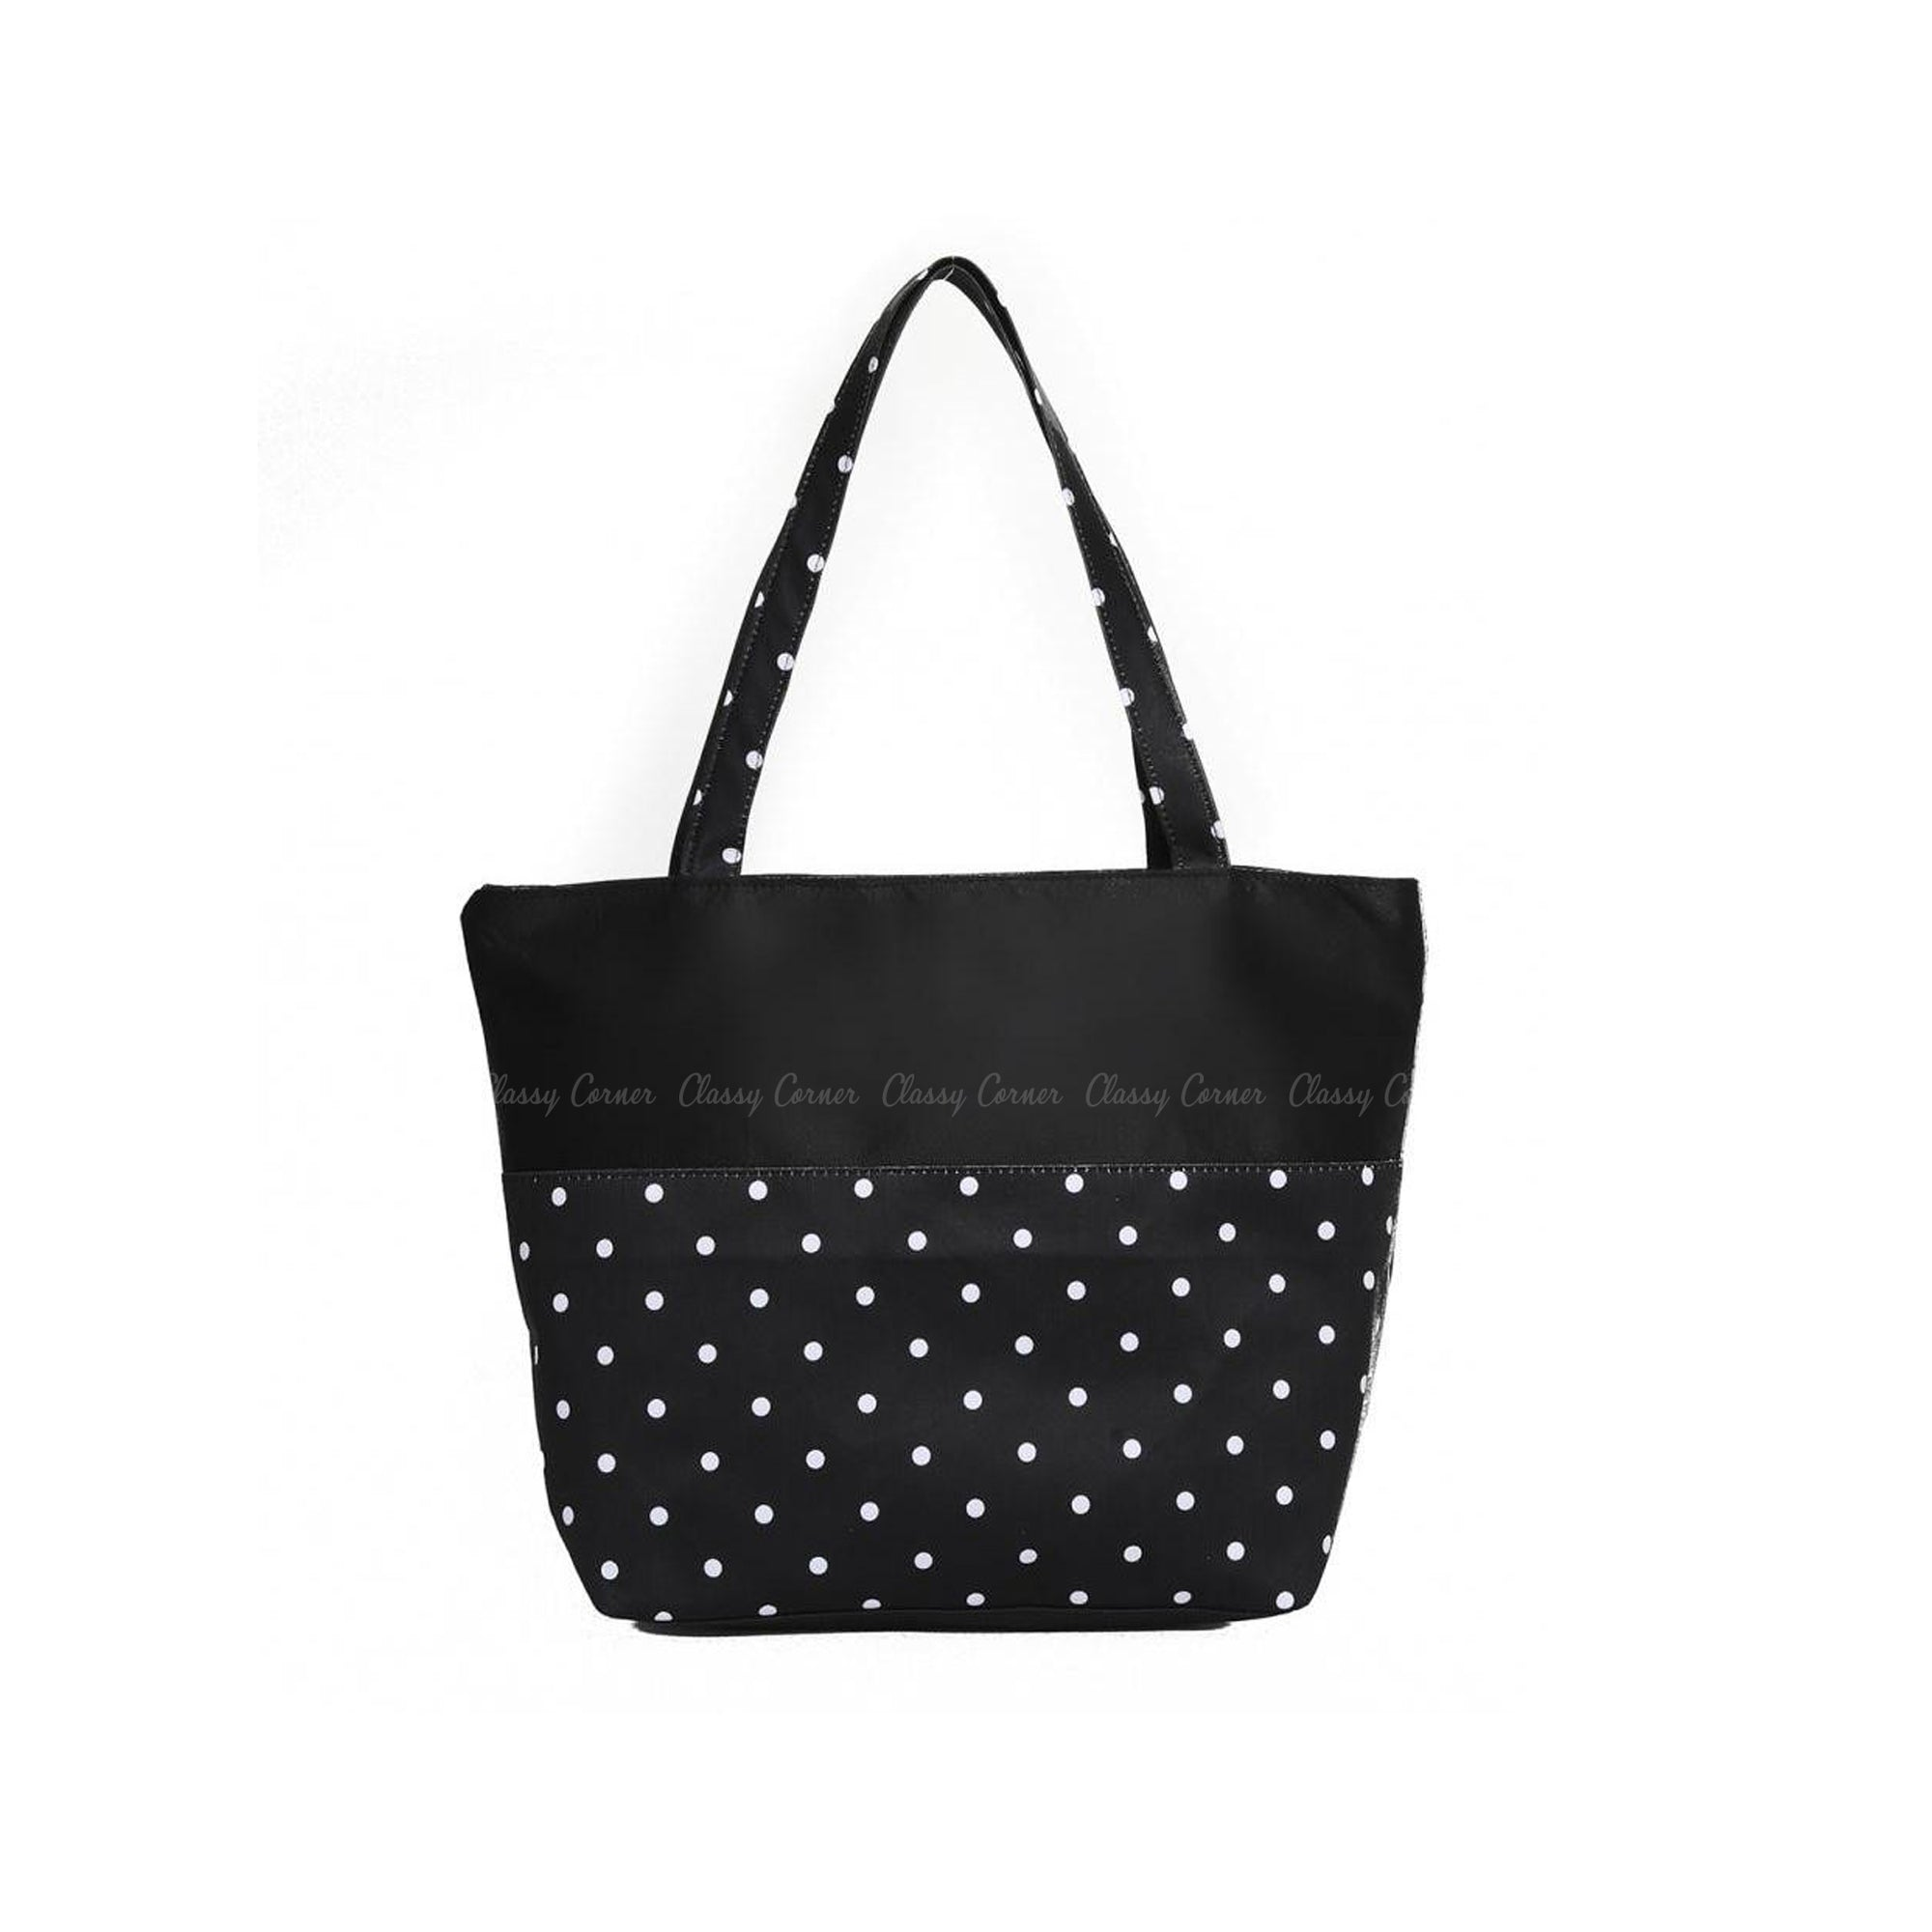 White Polka Dots Print with Zipper Black Beach Tote Bag